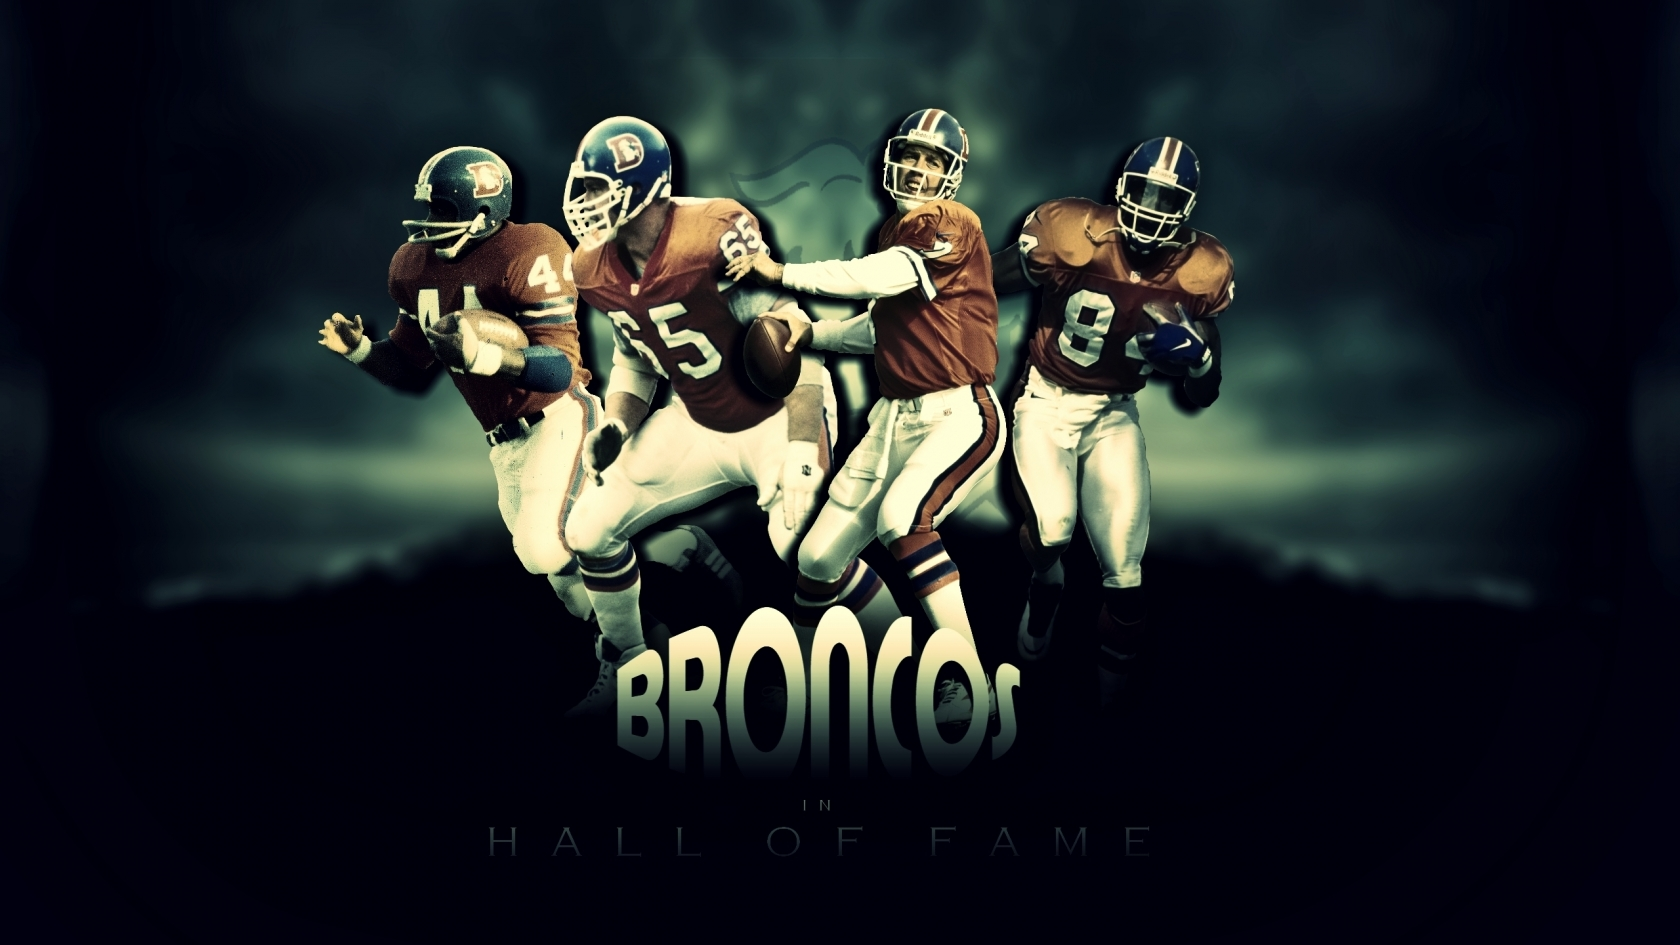 Broncos Hall of Fame for 1680 x 945 HDTV resolution